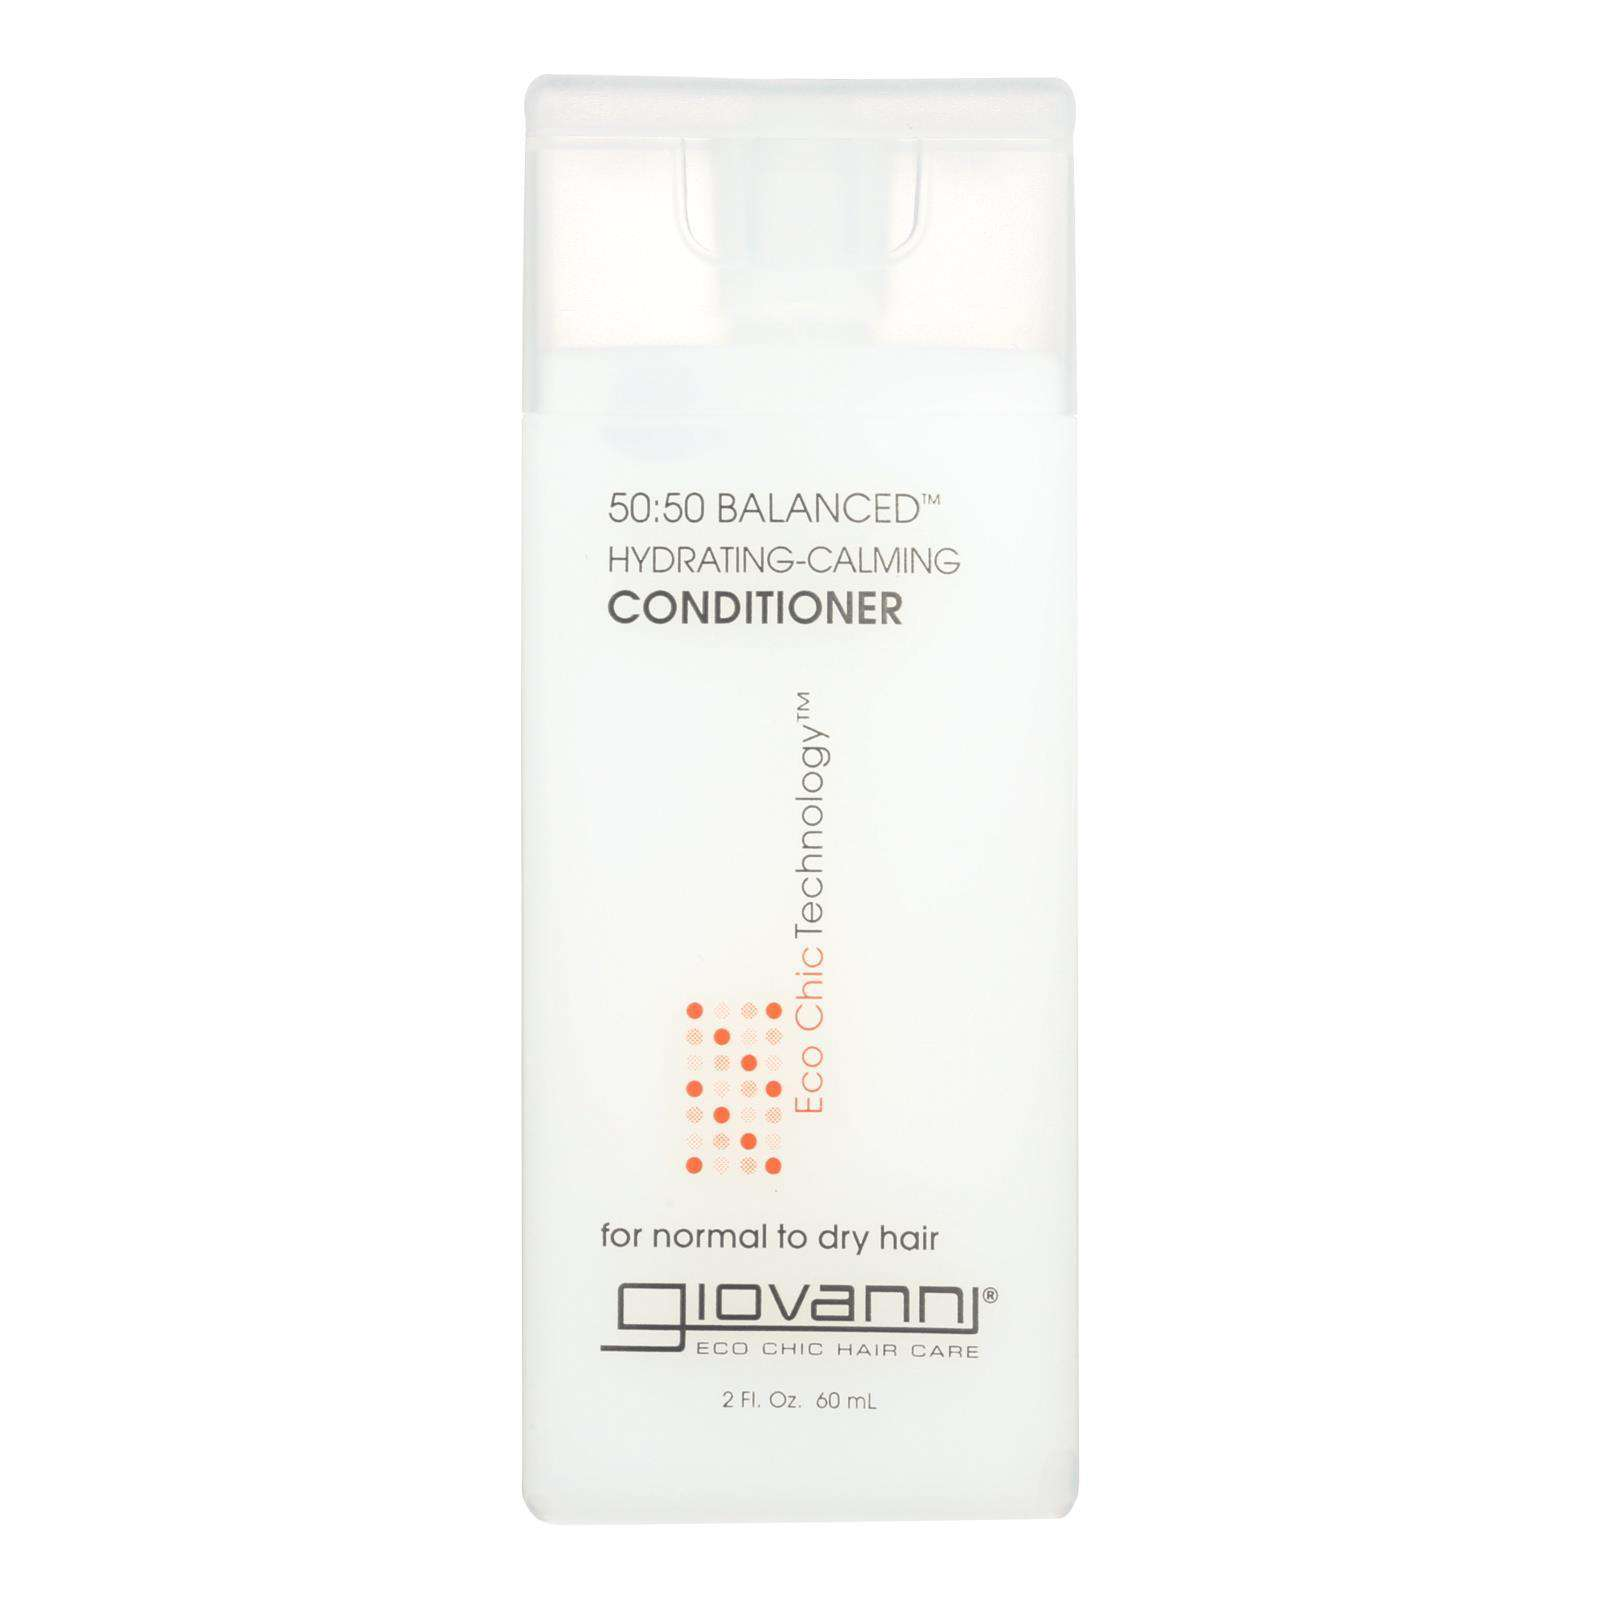 Giovanni 50:50 Balanced Conditioner Hydrating-calming - 2 Fl Oz - Case Of 12 - BeeGreen